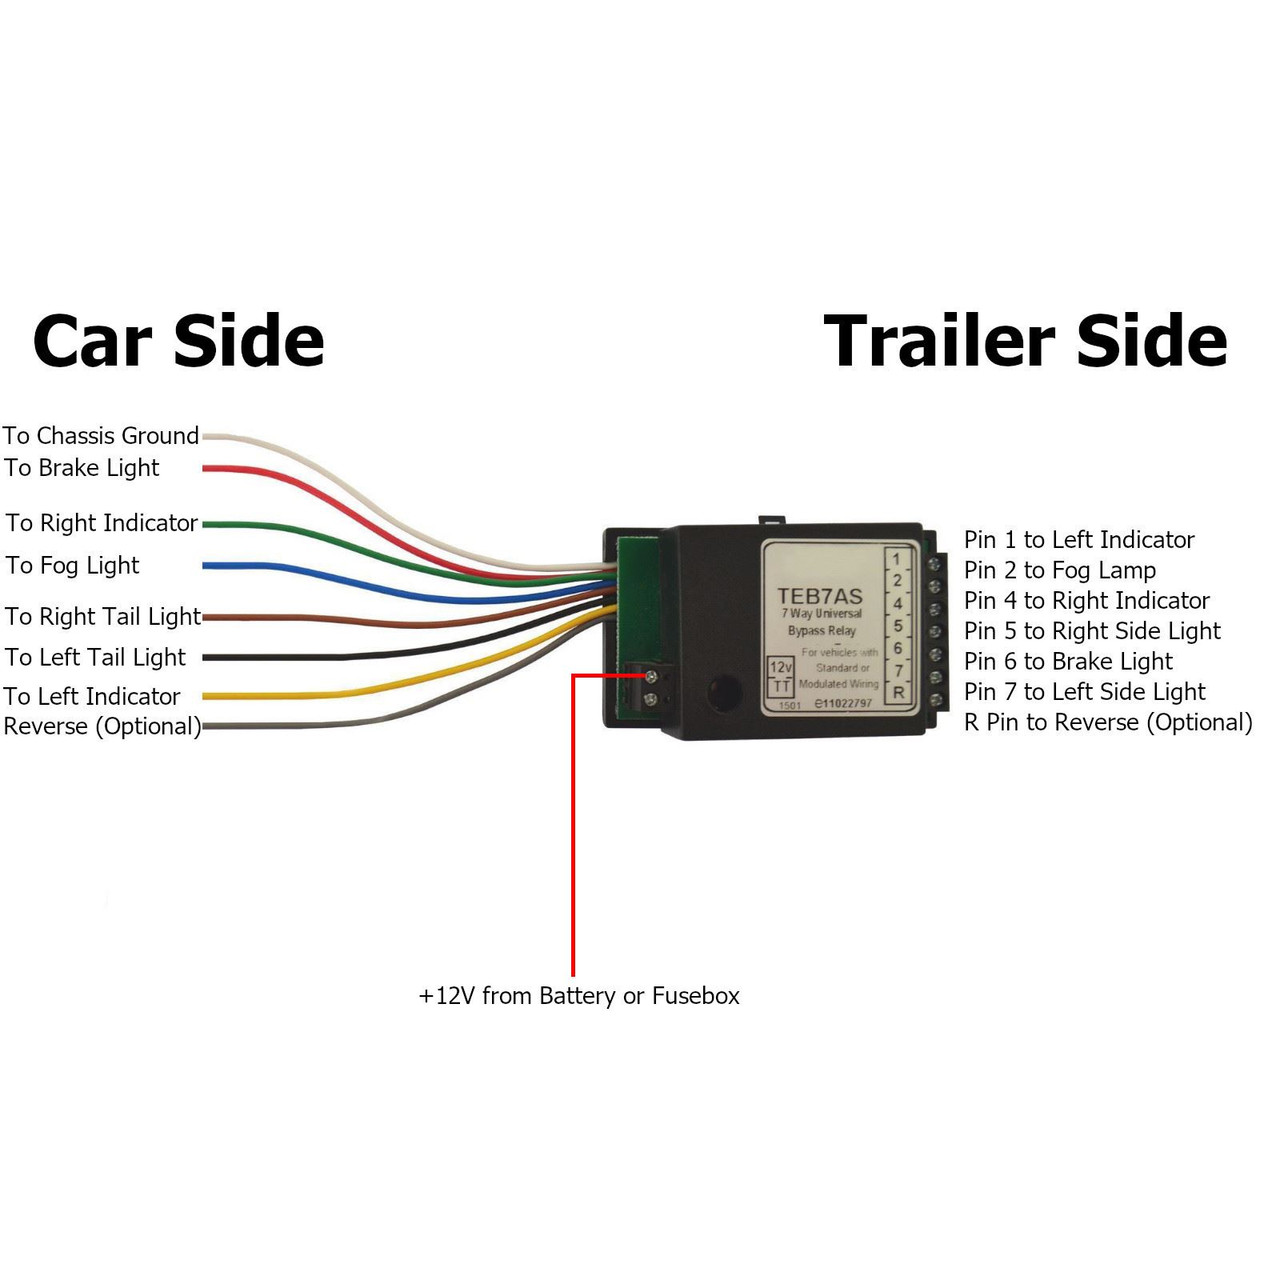 Trailer Caravan LED Light Fix Bypass Relay Towing Electrics Socket - AB  Tools OnlineAB Tools Online